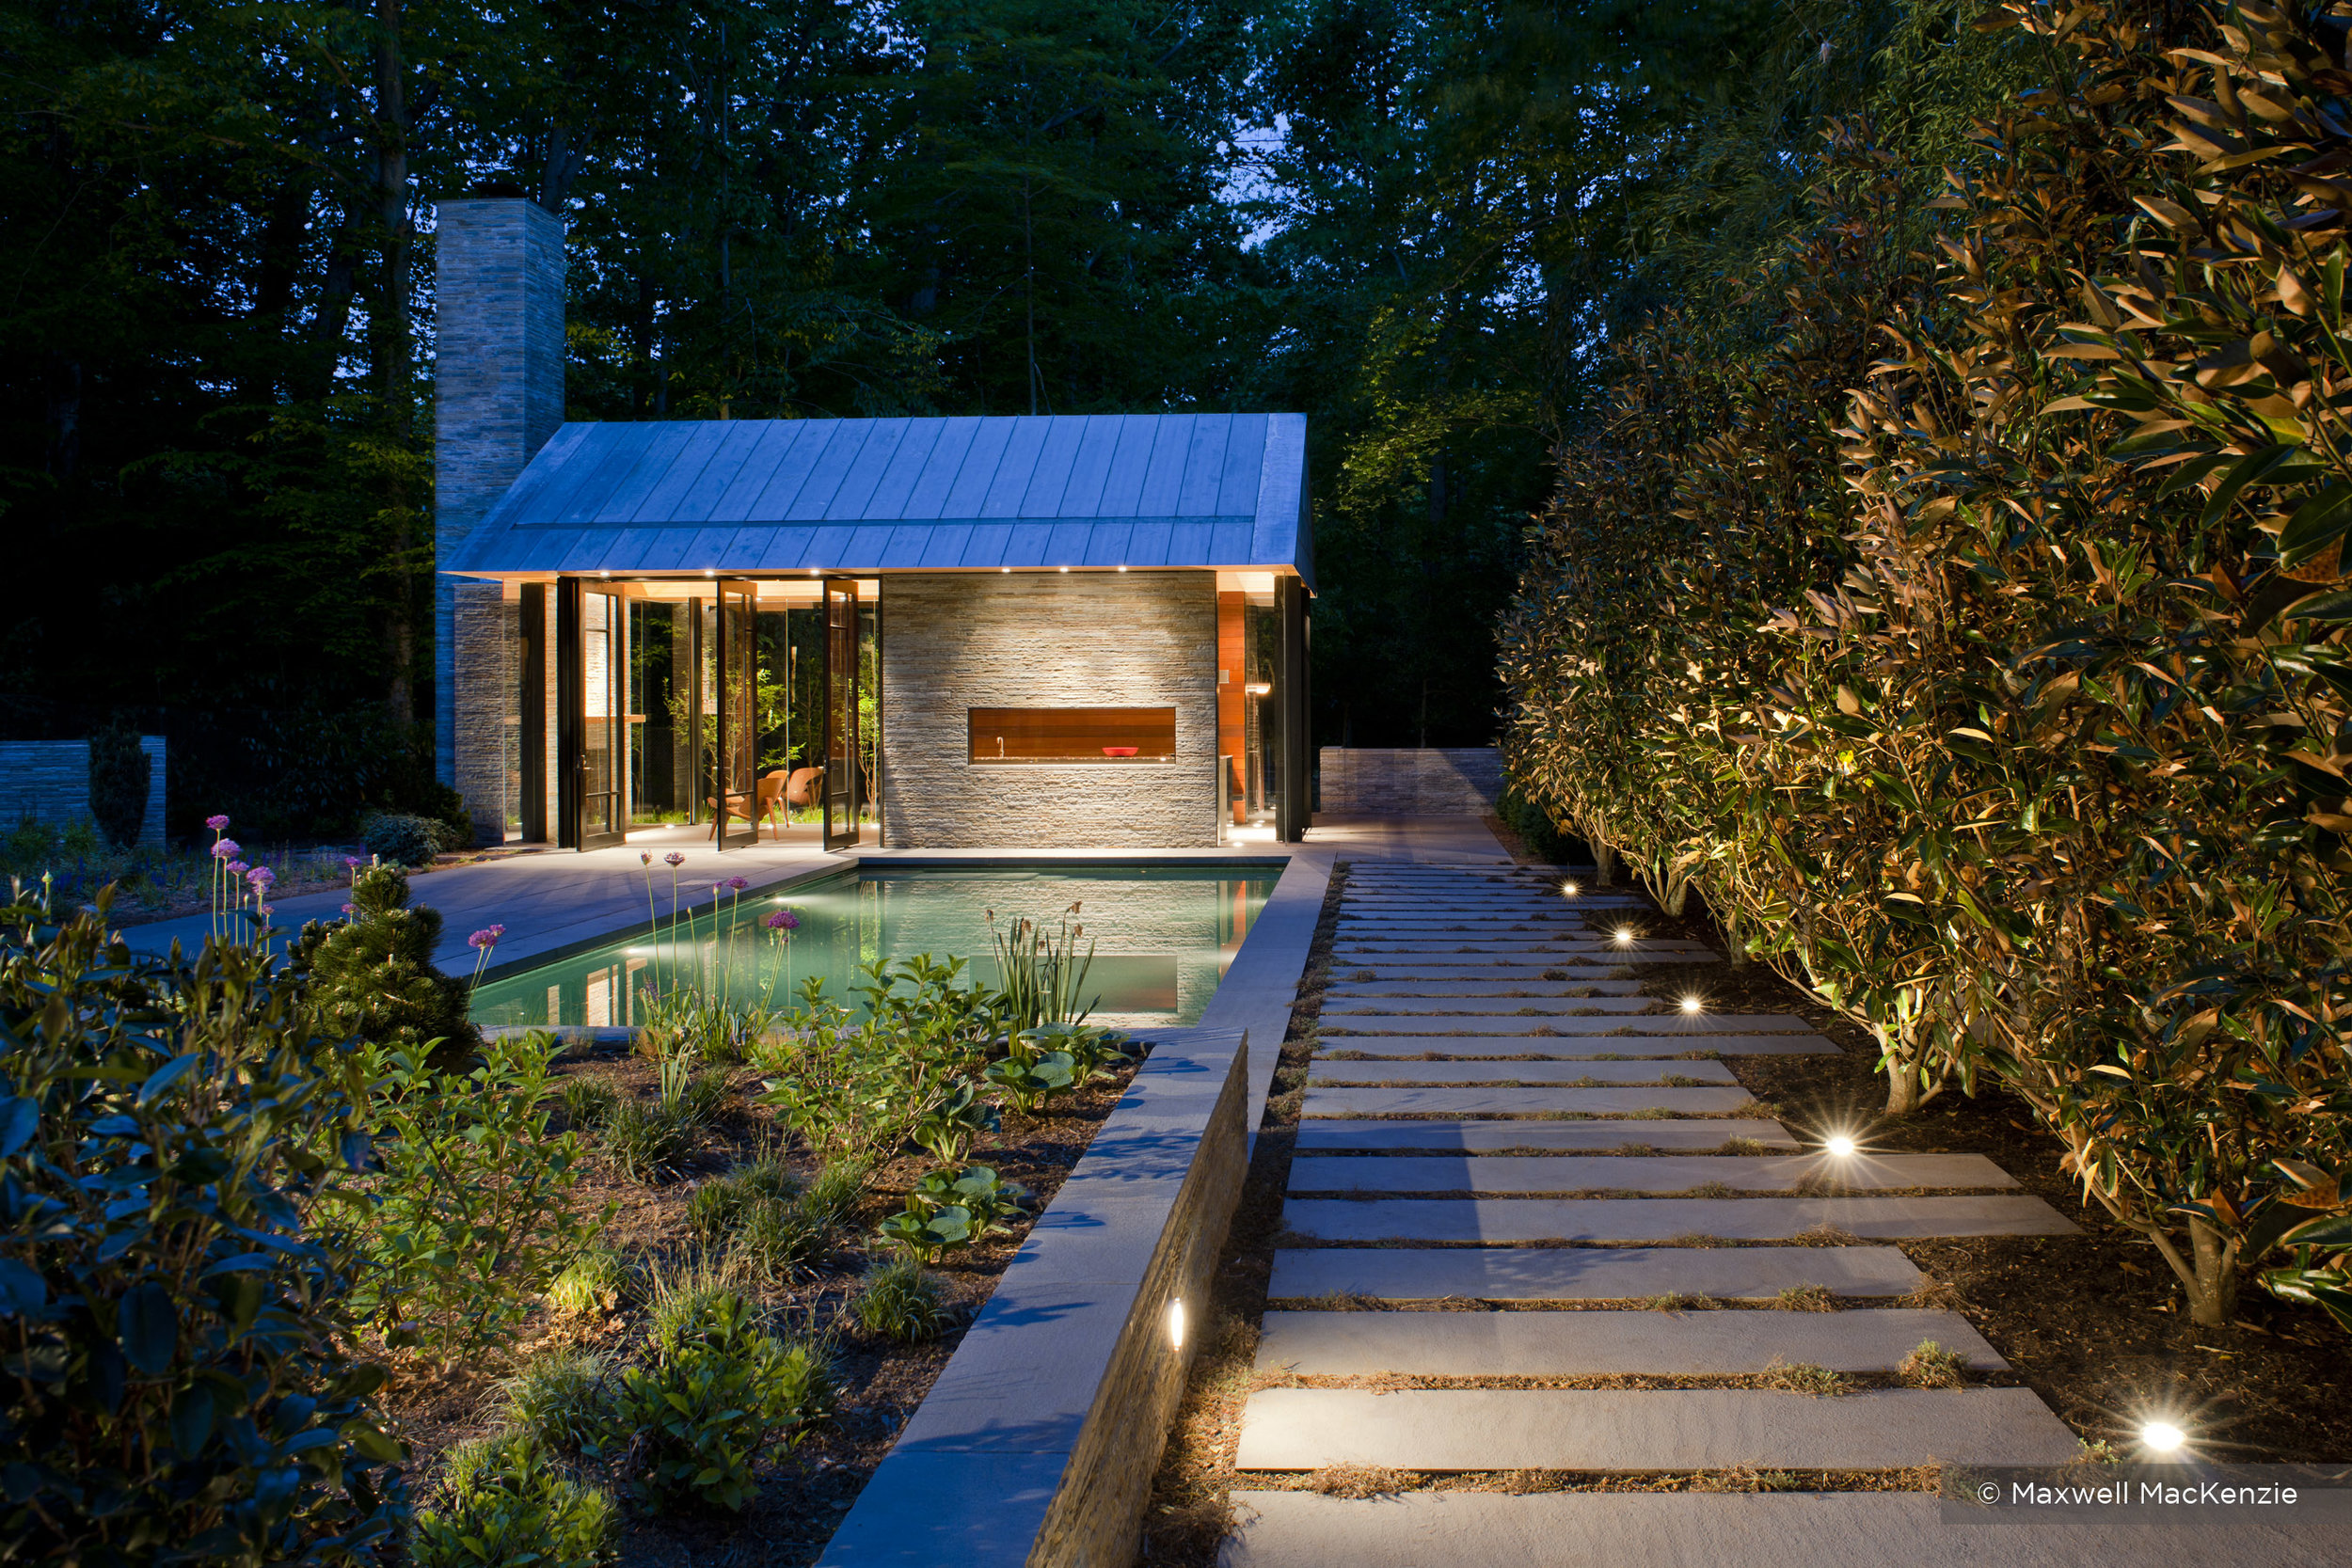 A modern pool house in Bethesda. Architecture by Robert Gurney. Photo by Max McKenzie. Design done at Rhodeside & Harwell.